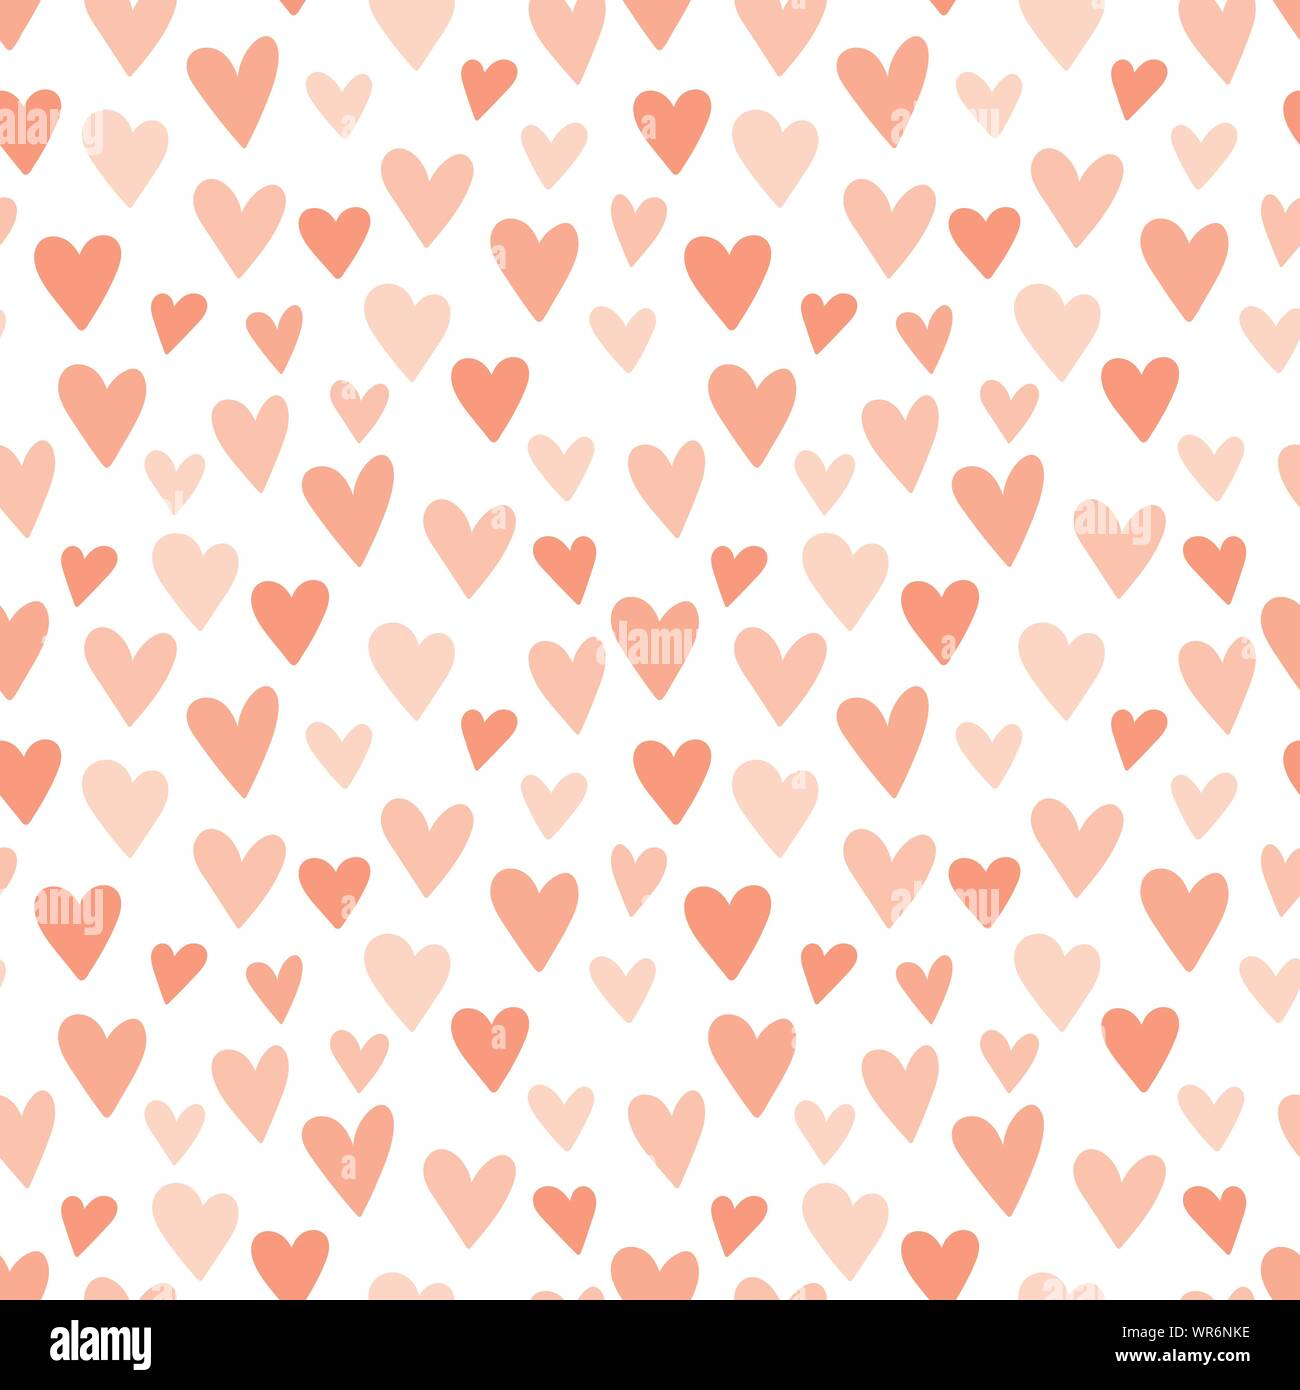 Pink Hearts Seamless Pattern Concept Of Baby Shower